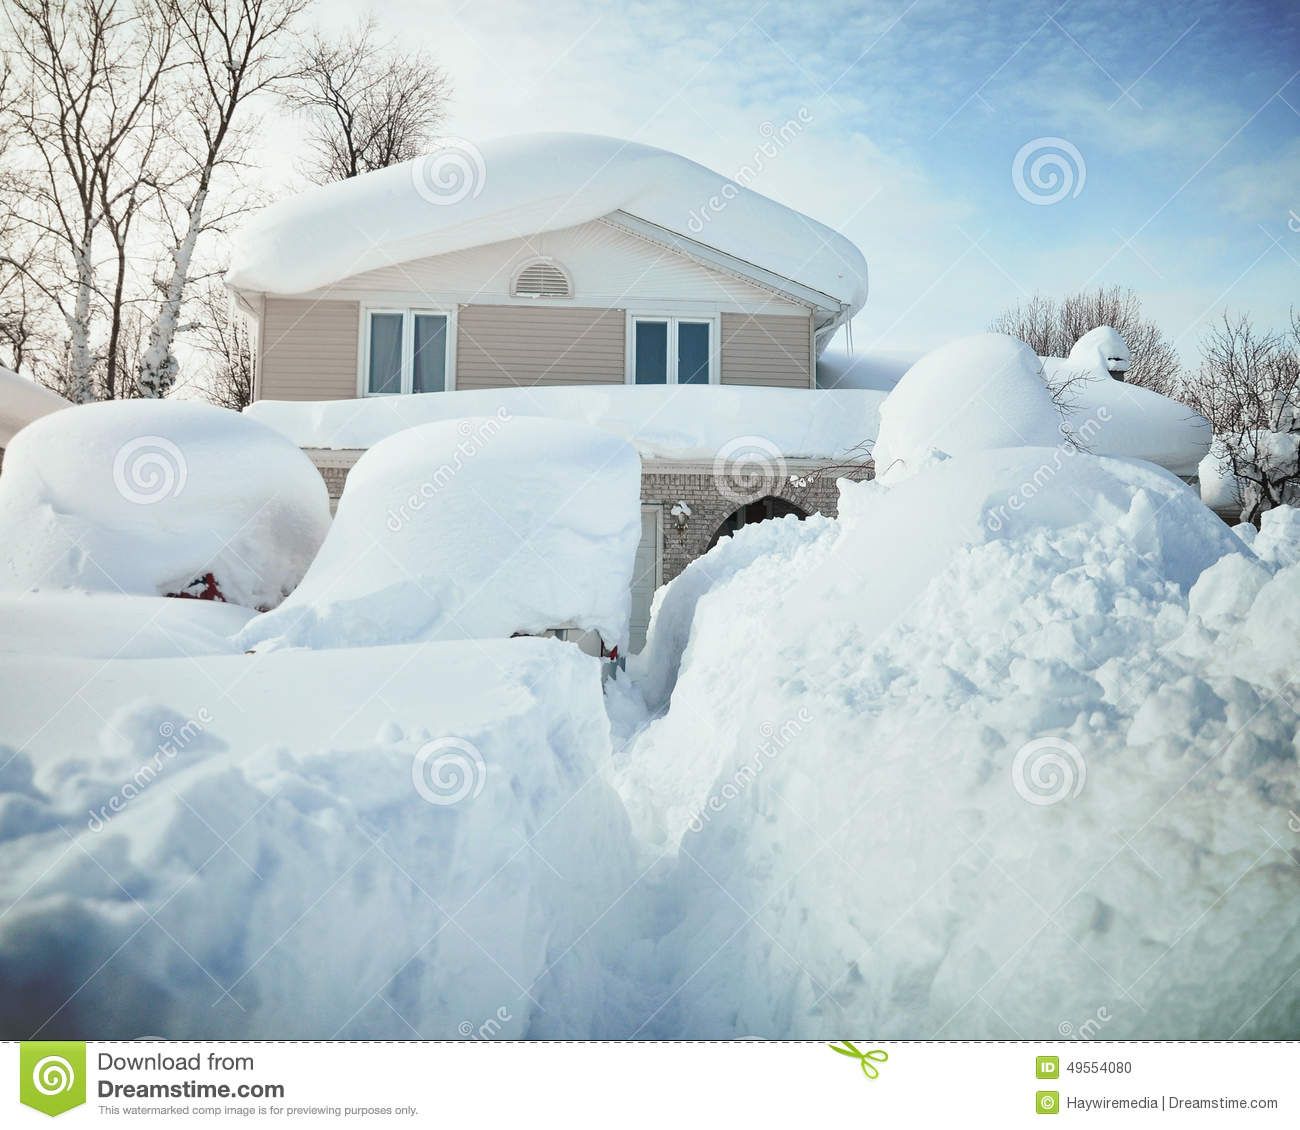 snow covered house - photo #41